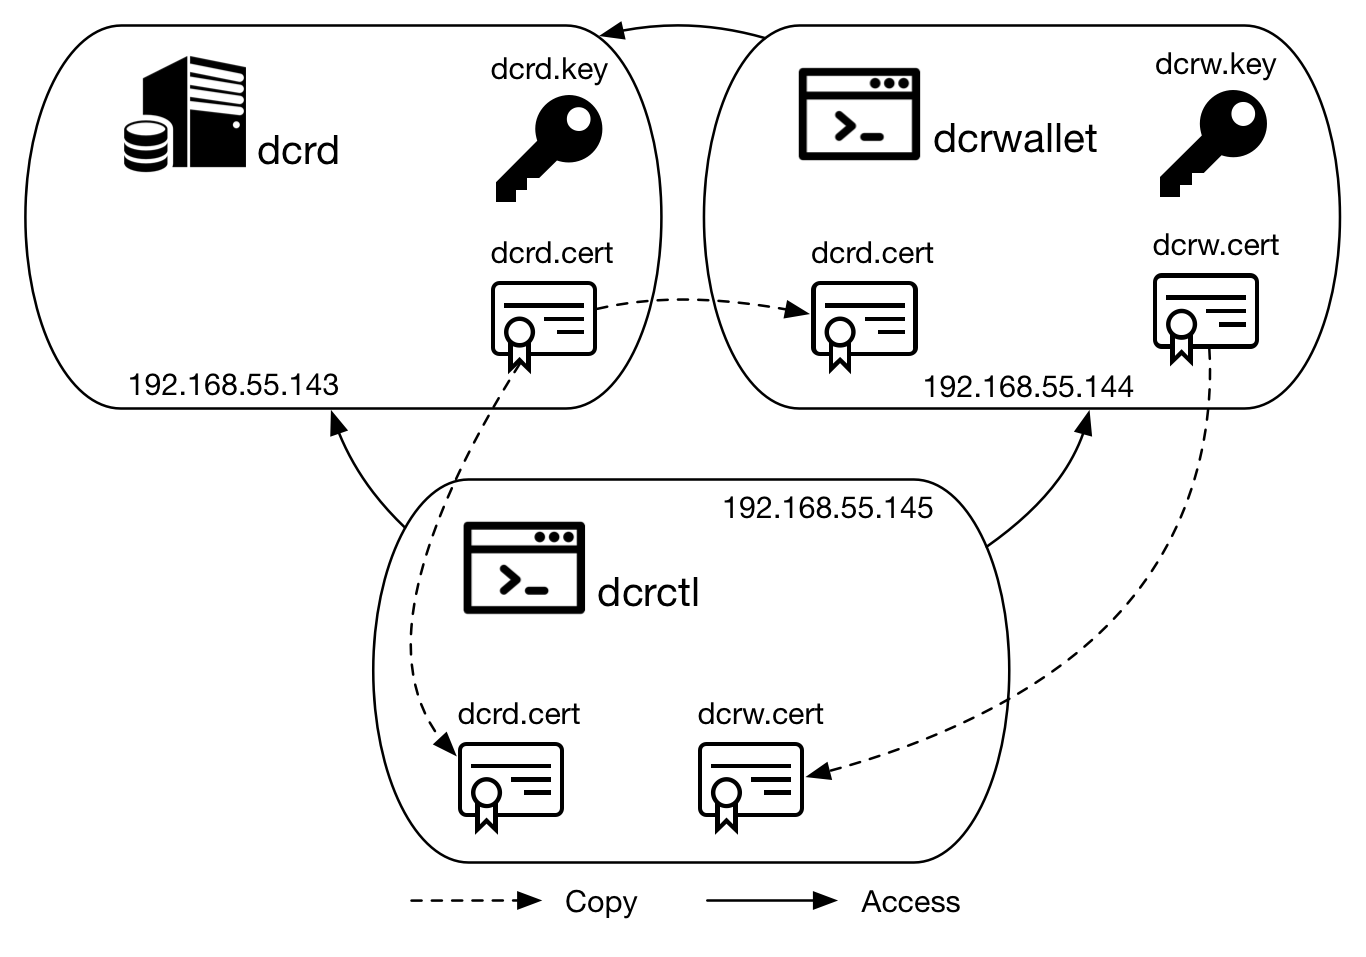 Figure 3 - Example scenario for OpenSSL